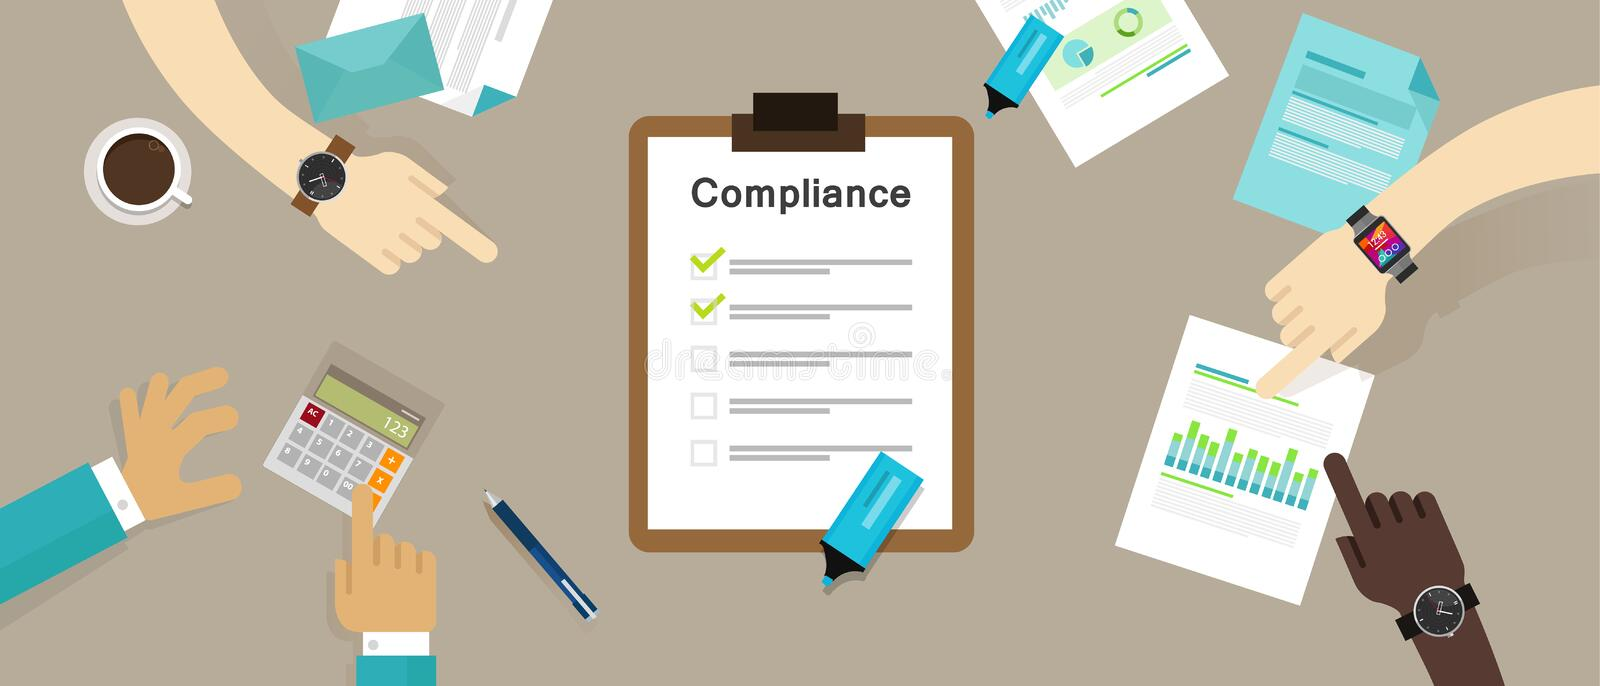 Compliance to regulation process standard industry company royalty free illustration